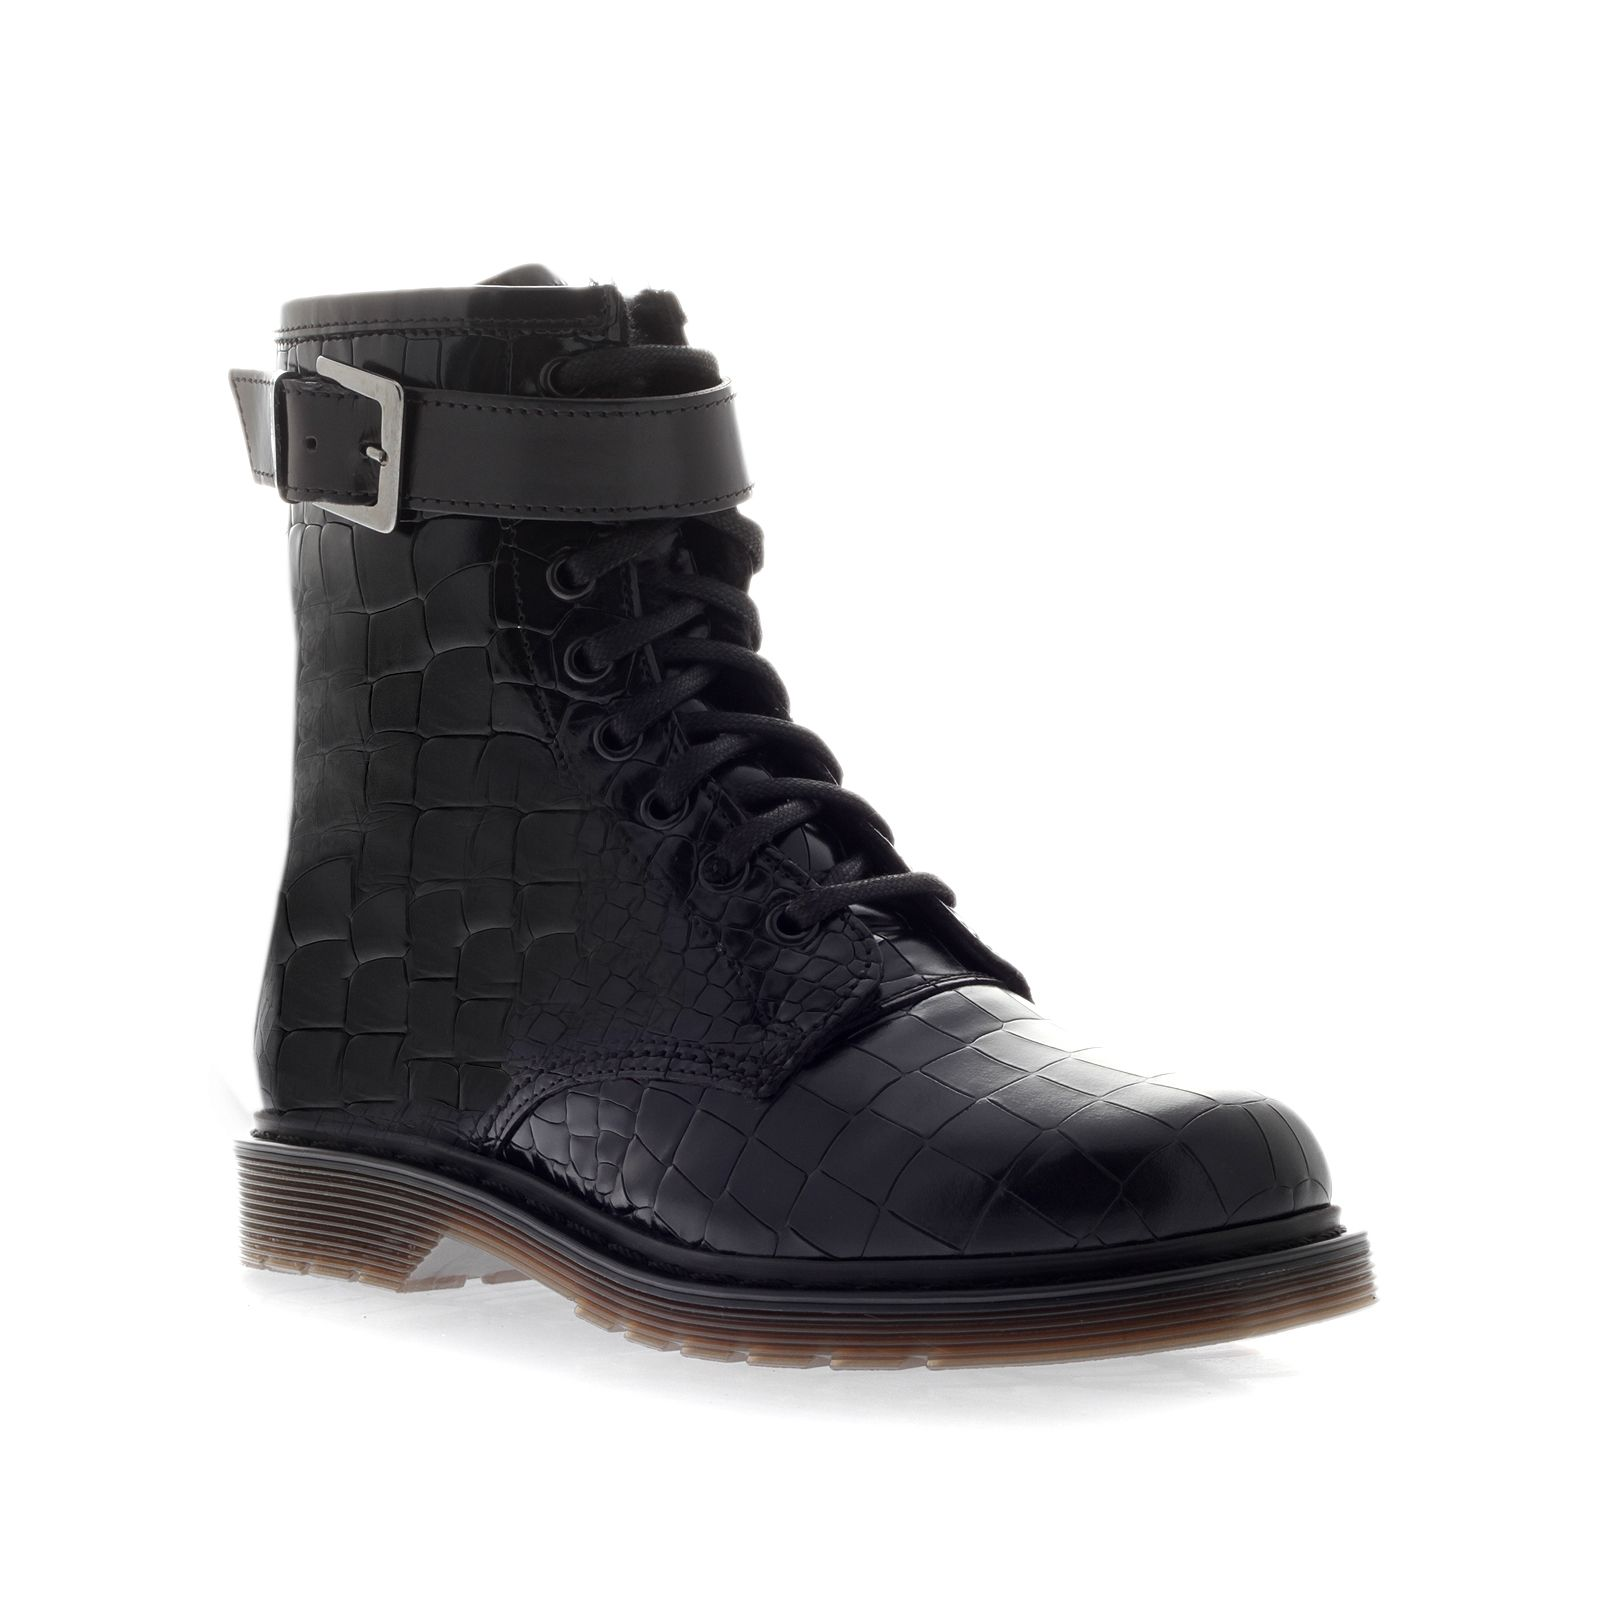 Steell lace up boots